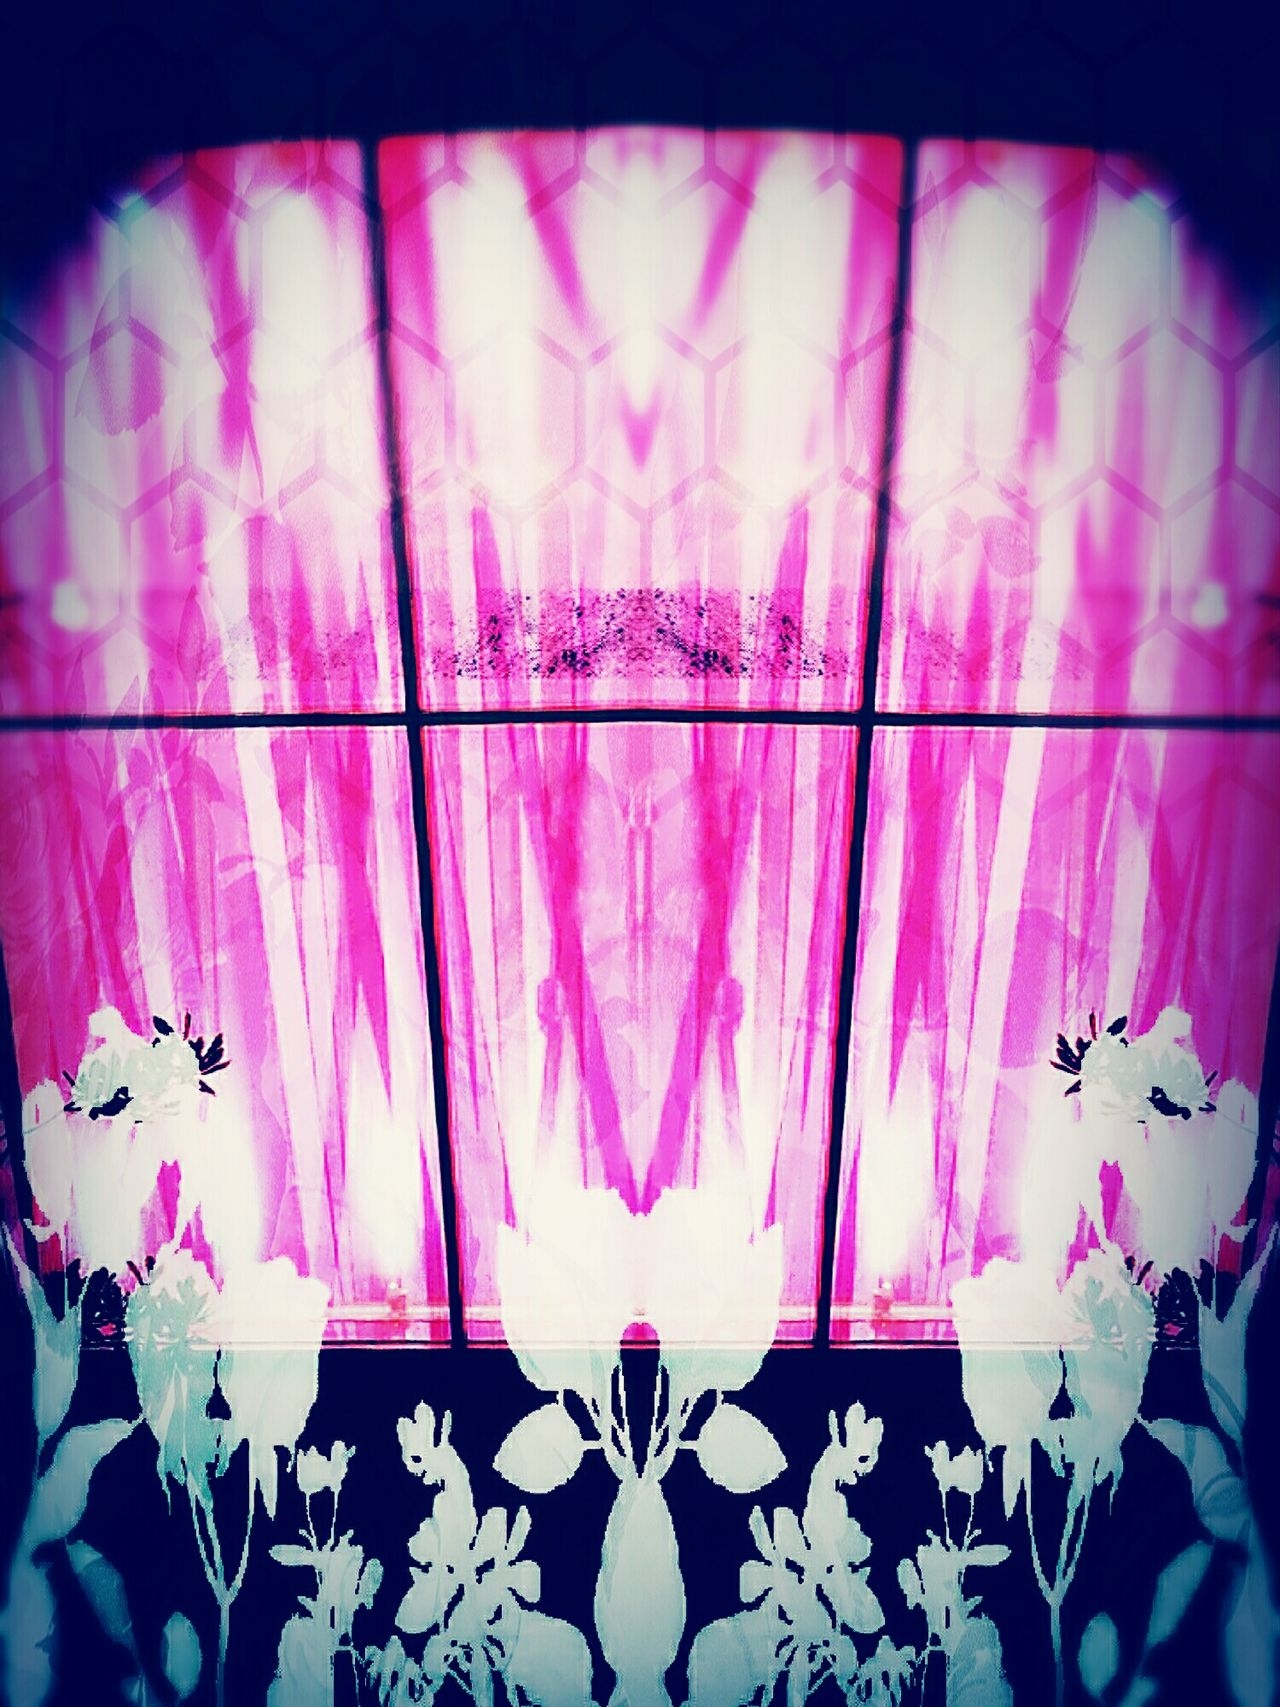 The Spectral Flora Opera Soullessphotography Phoneography Victoria's Secret Pink Pixlr EyeEm Mirror Mirror Photo